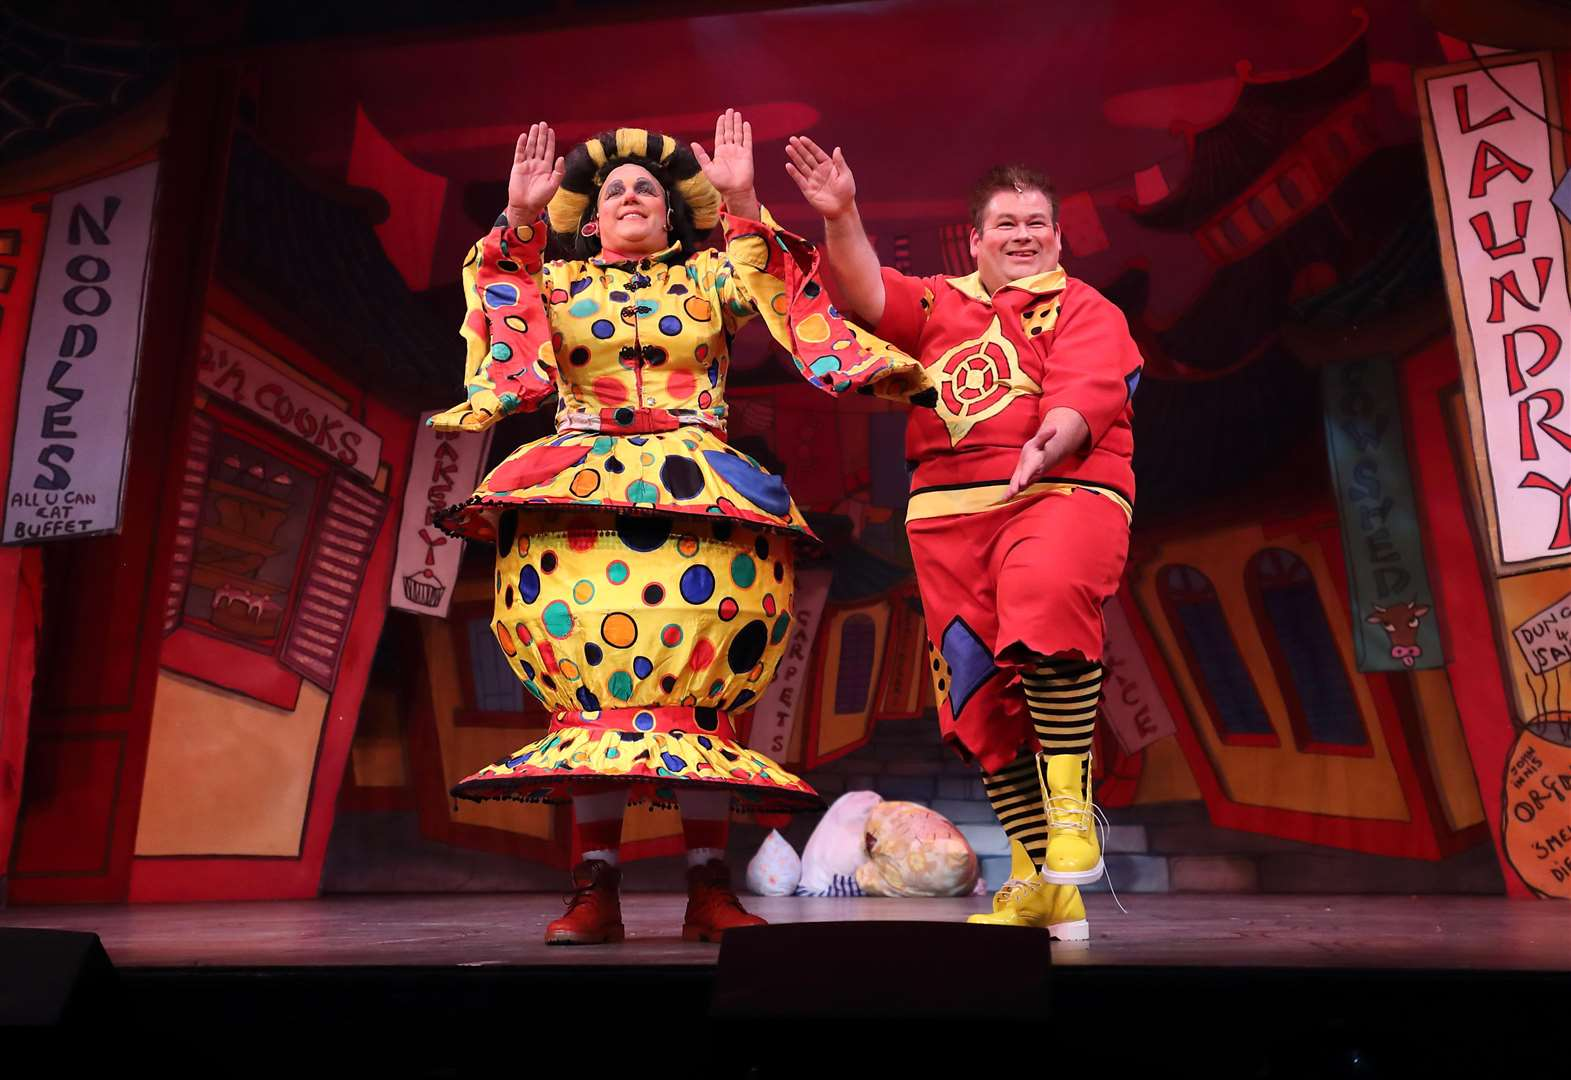 Aladdin: Family pantomime worth seeing